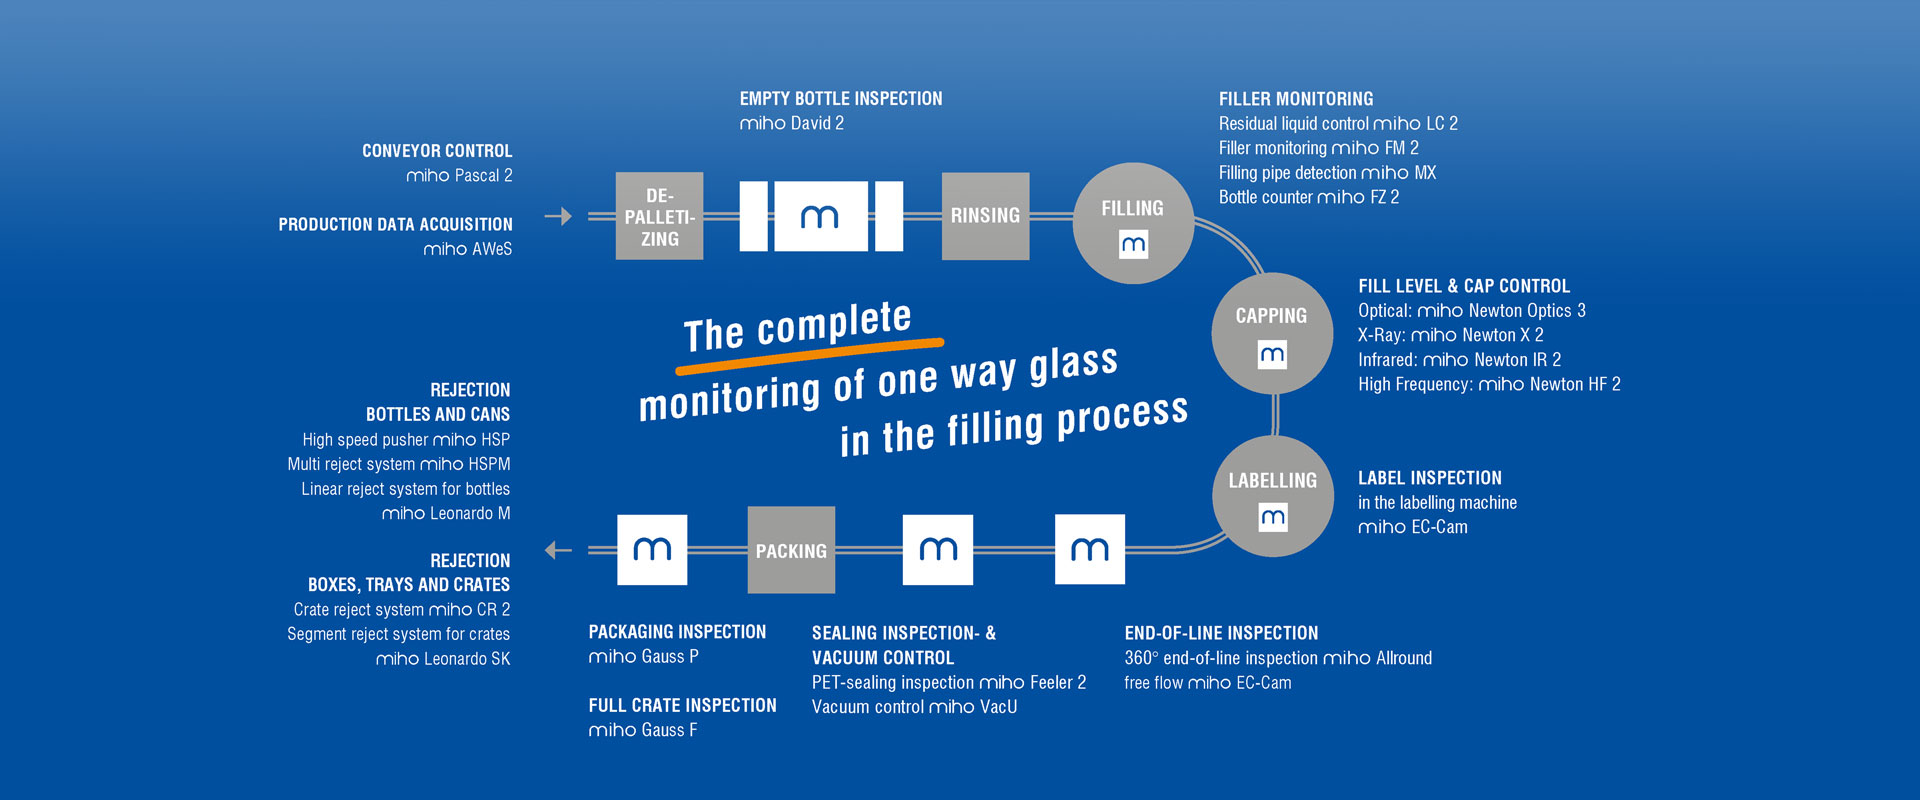 The complete monitoring of one way glass in the filling process